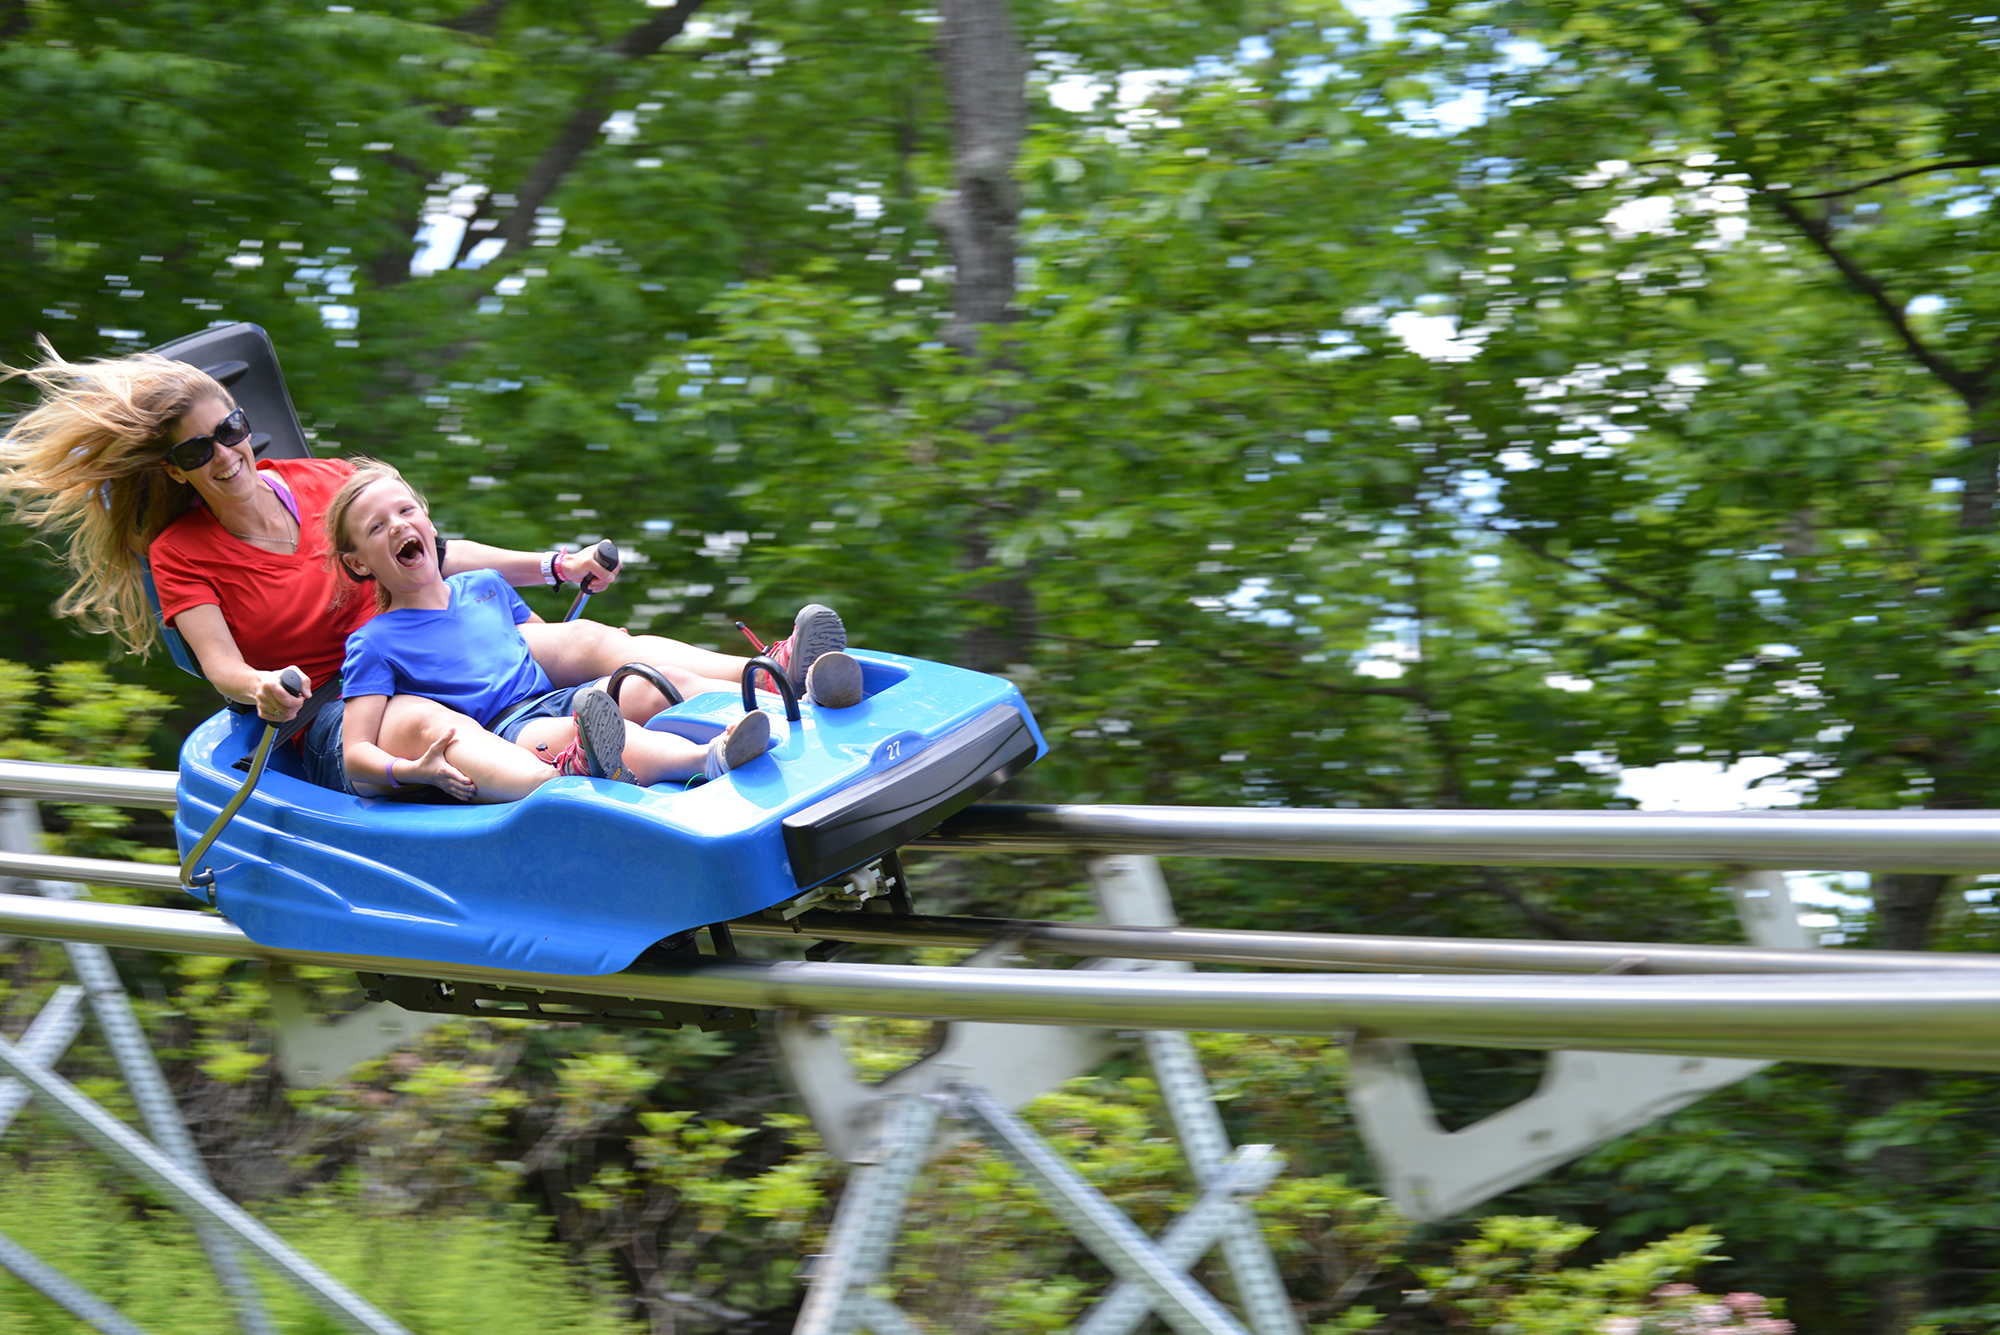 adg mountain coaster